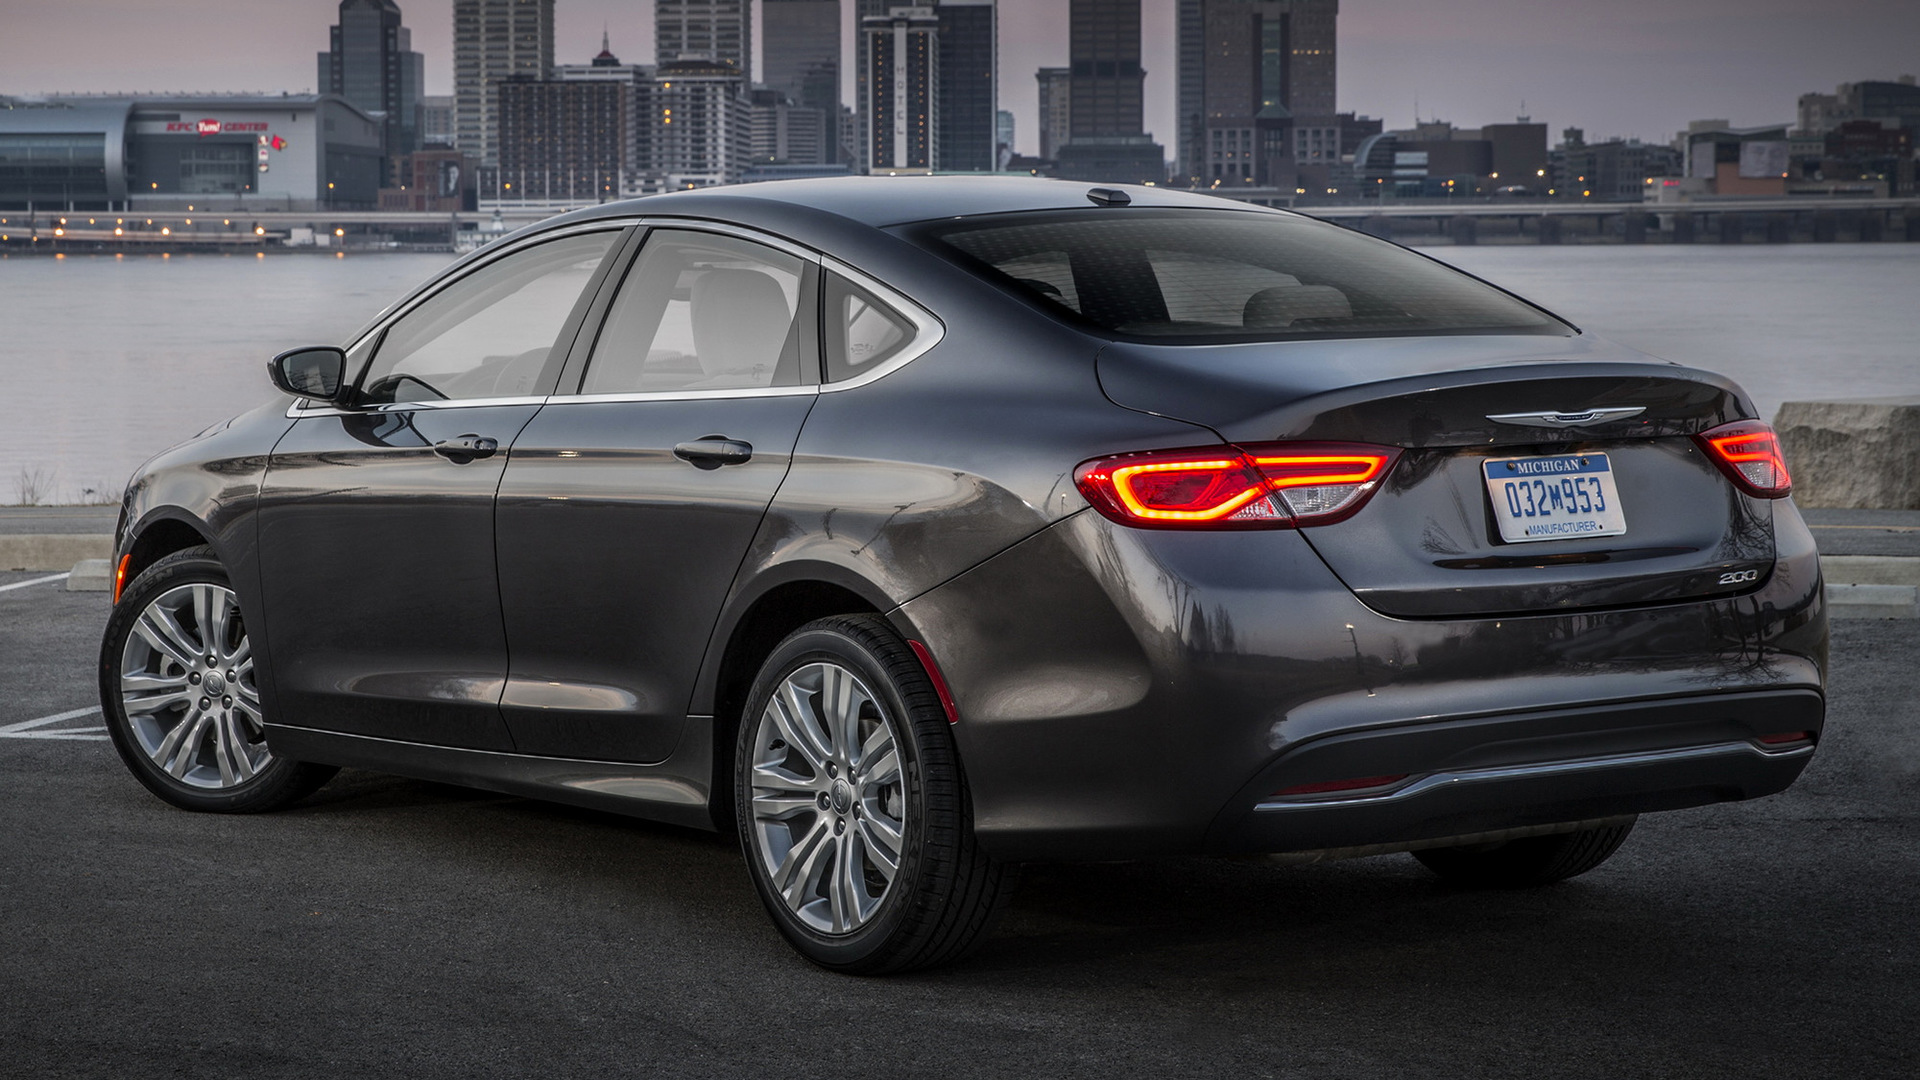 Chrysler 200 Limited 2015 Wallpapers and HD Images 1920x1080